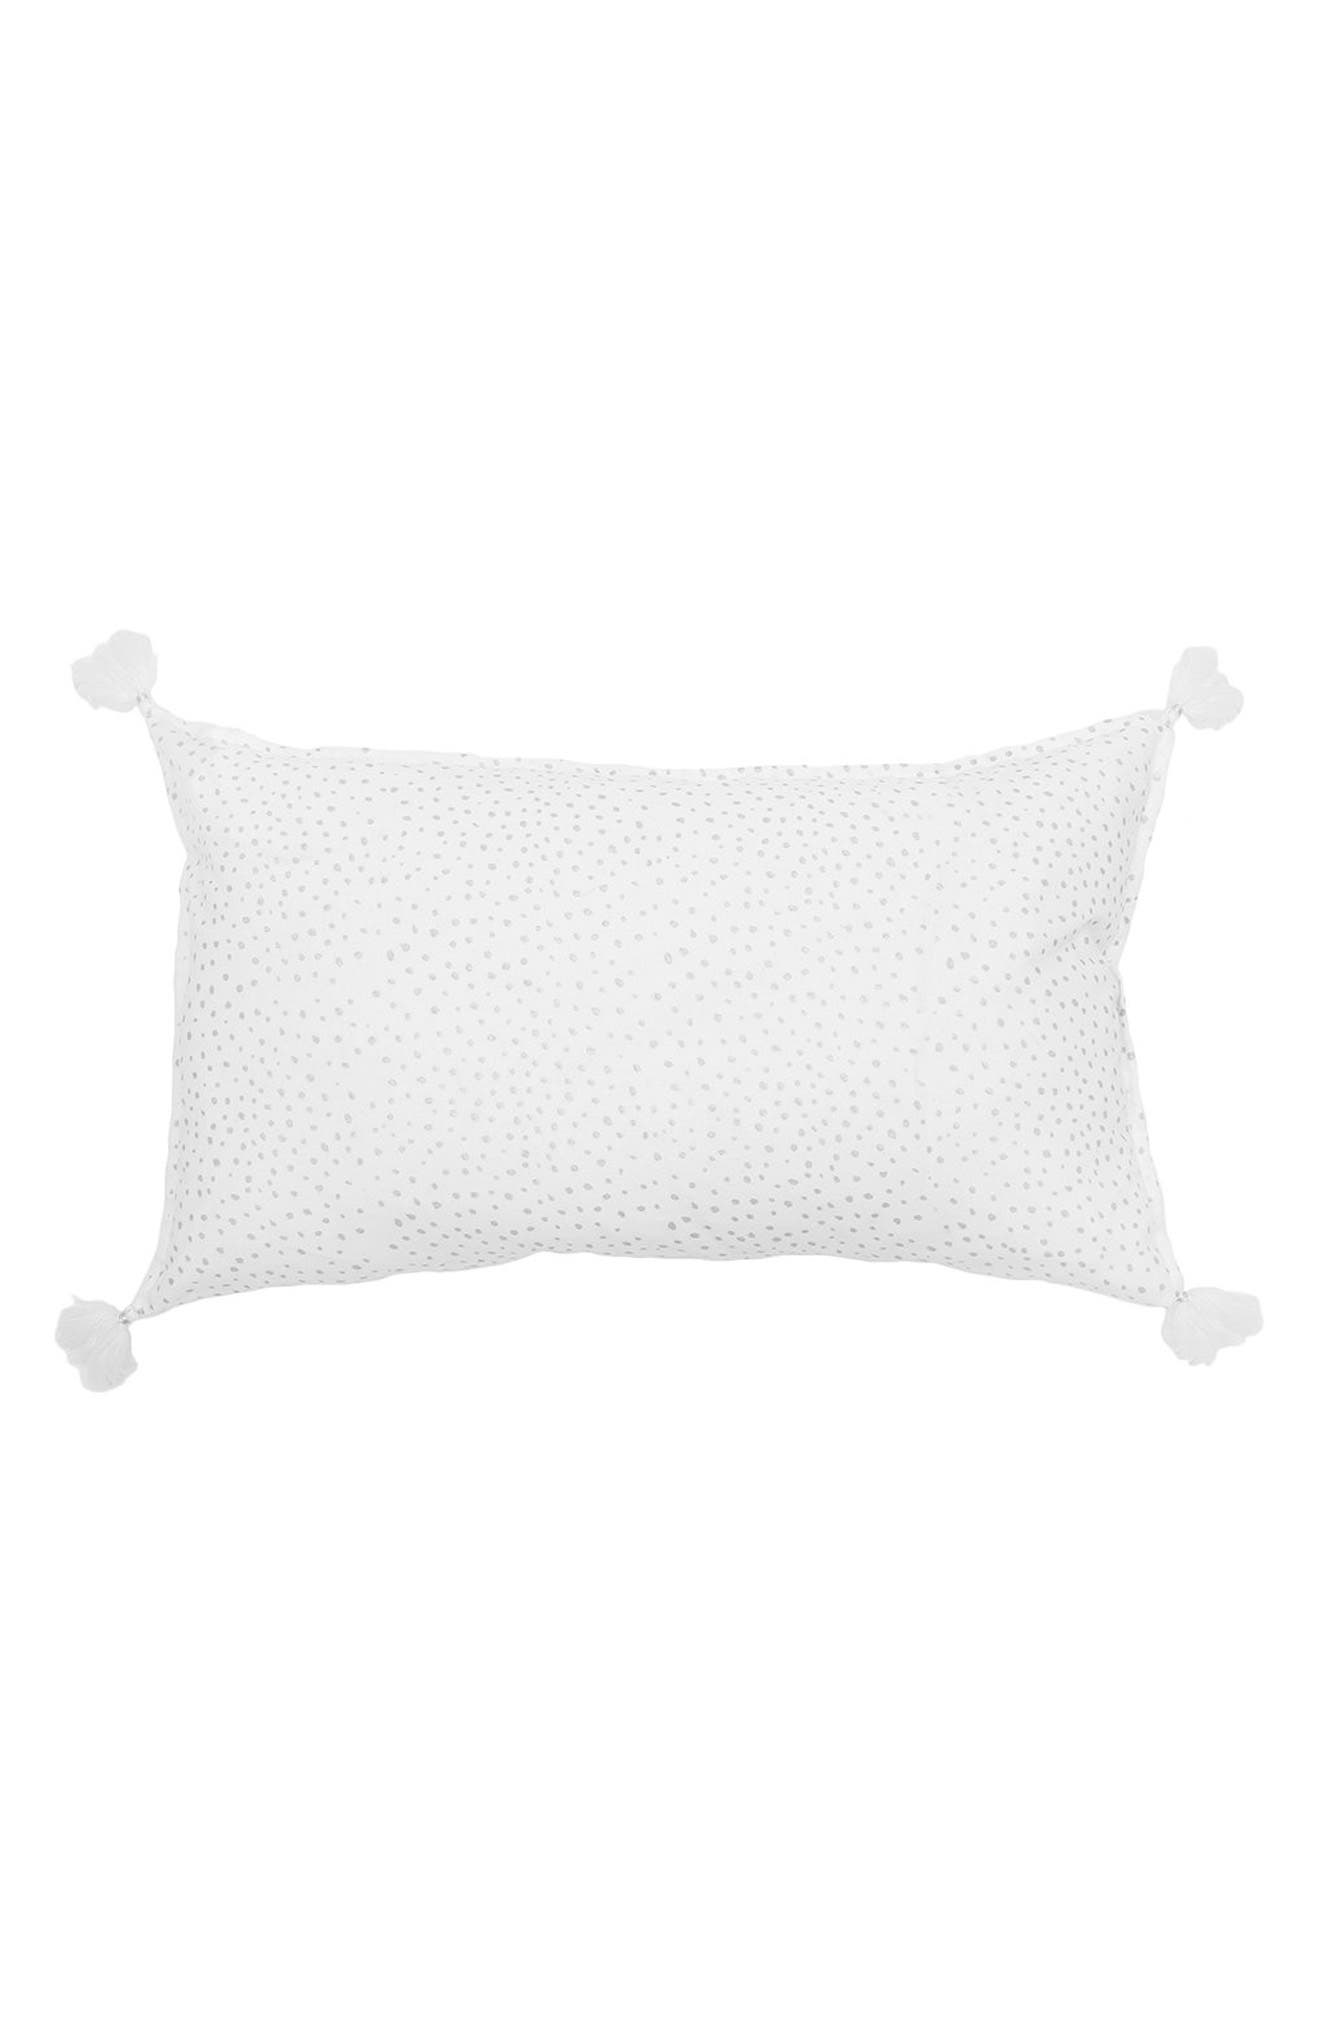 Dot Accent Pillow,                         Main,                         color, SILVER